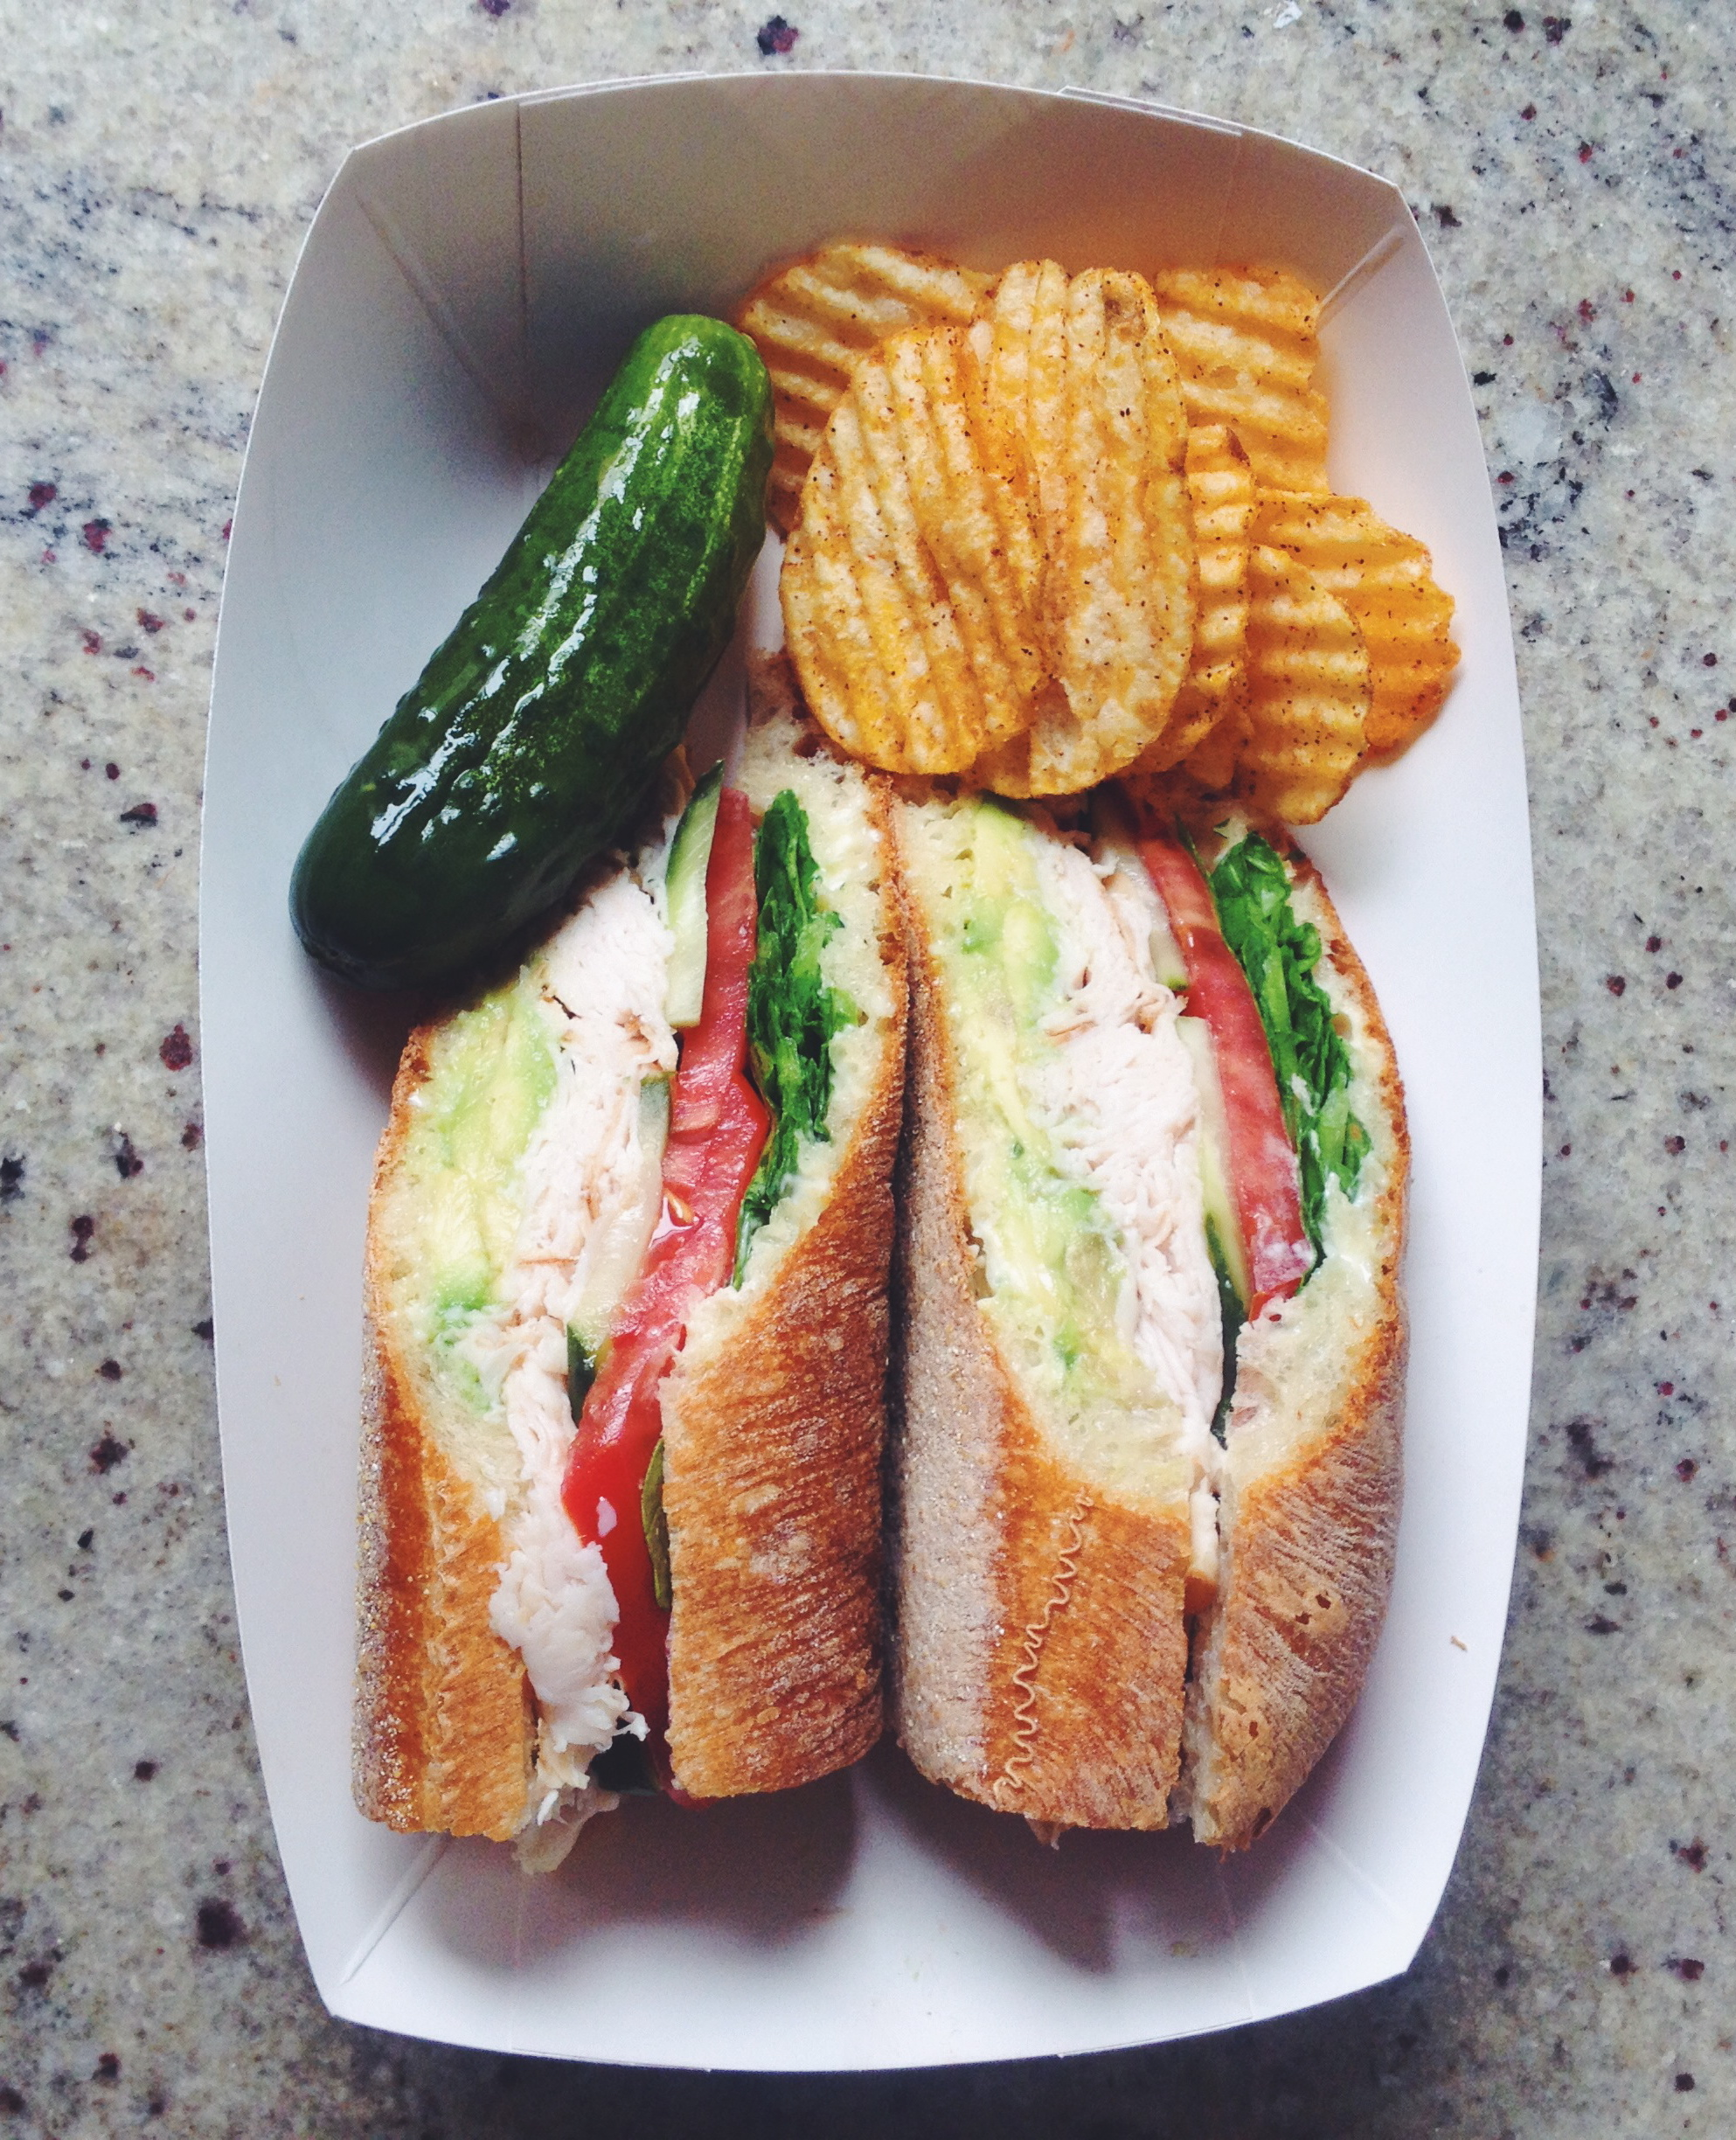 The perfect turkey sandwich